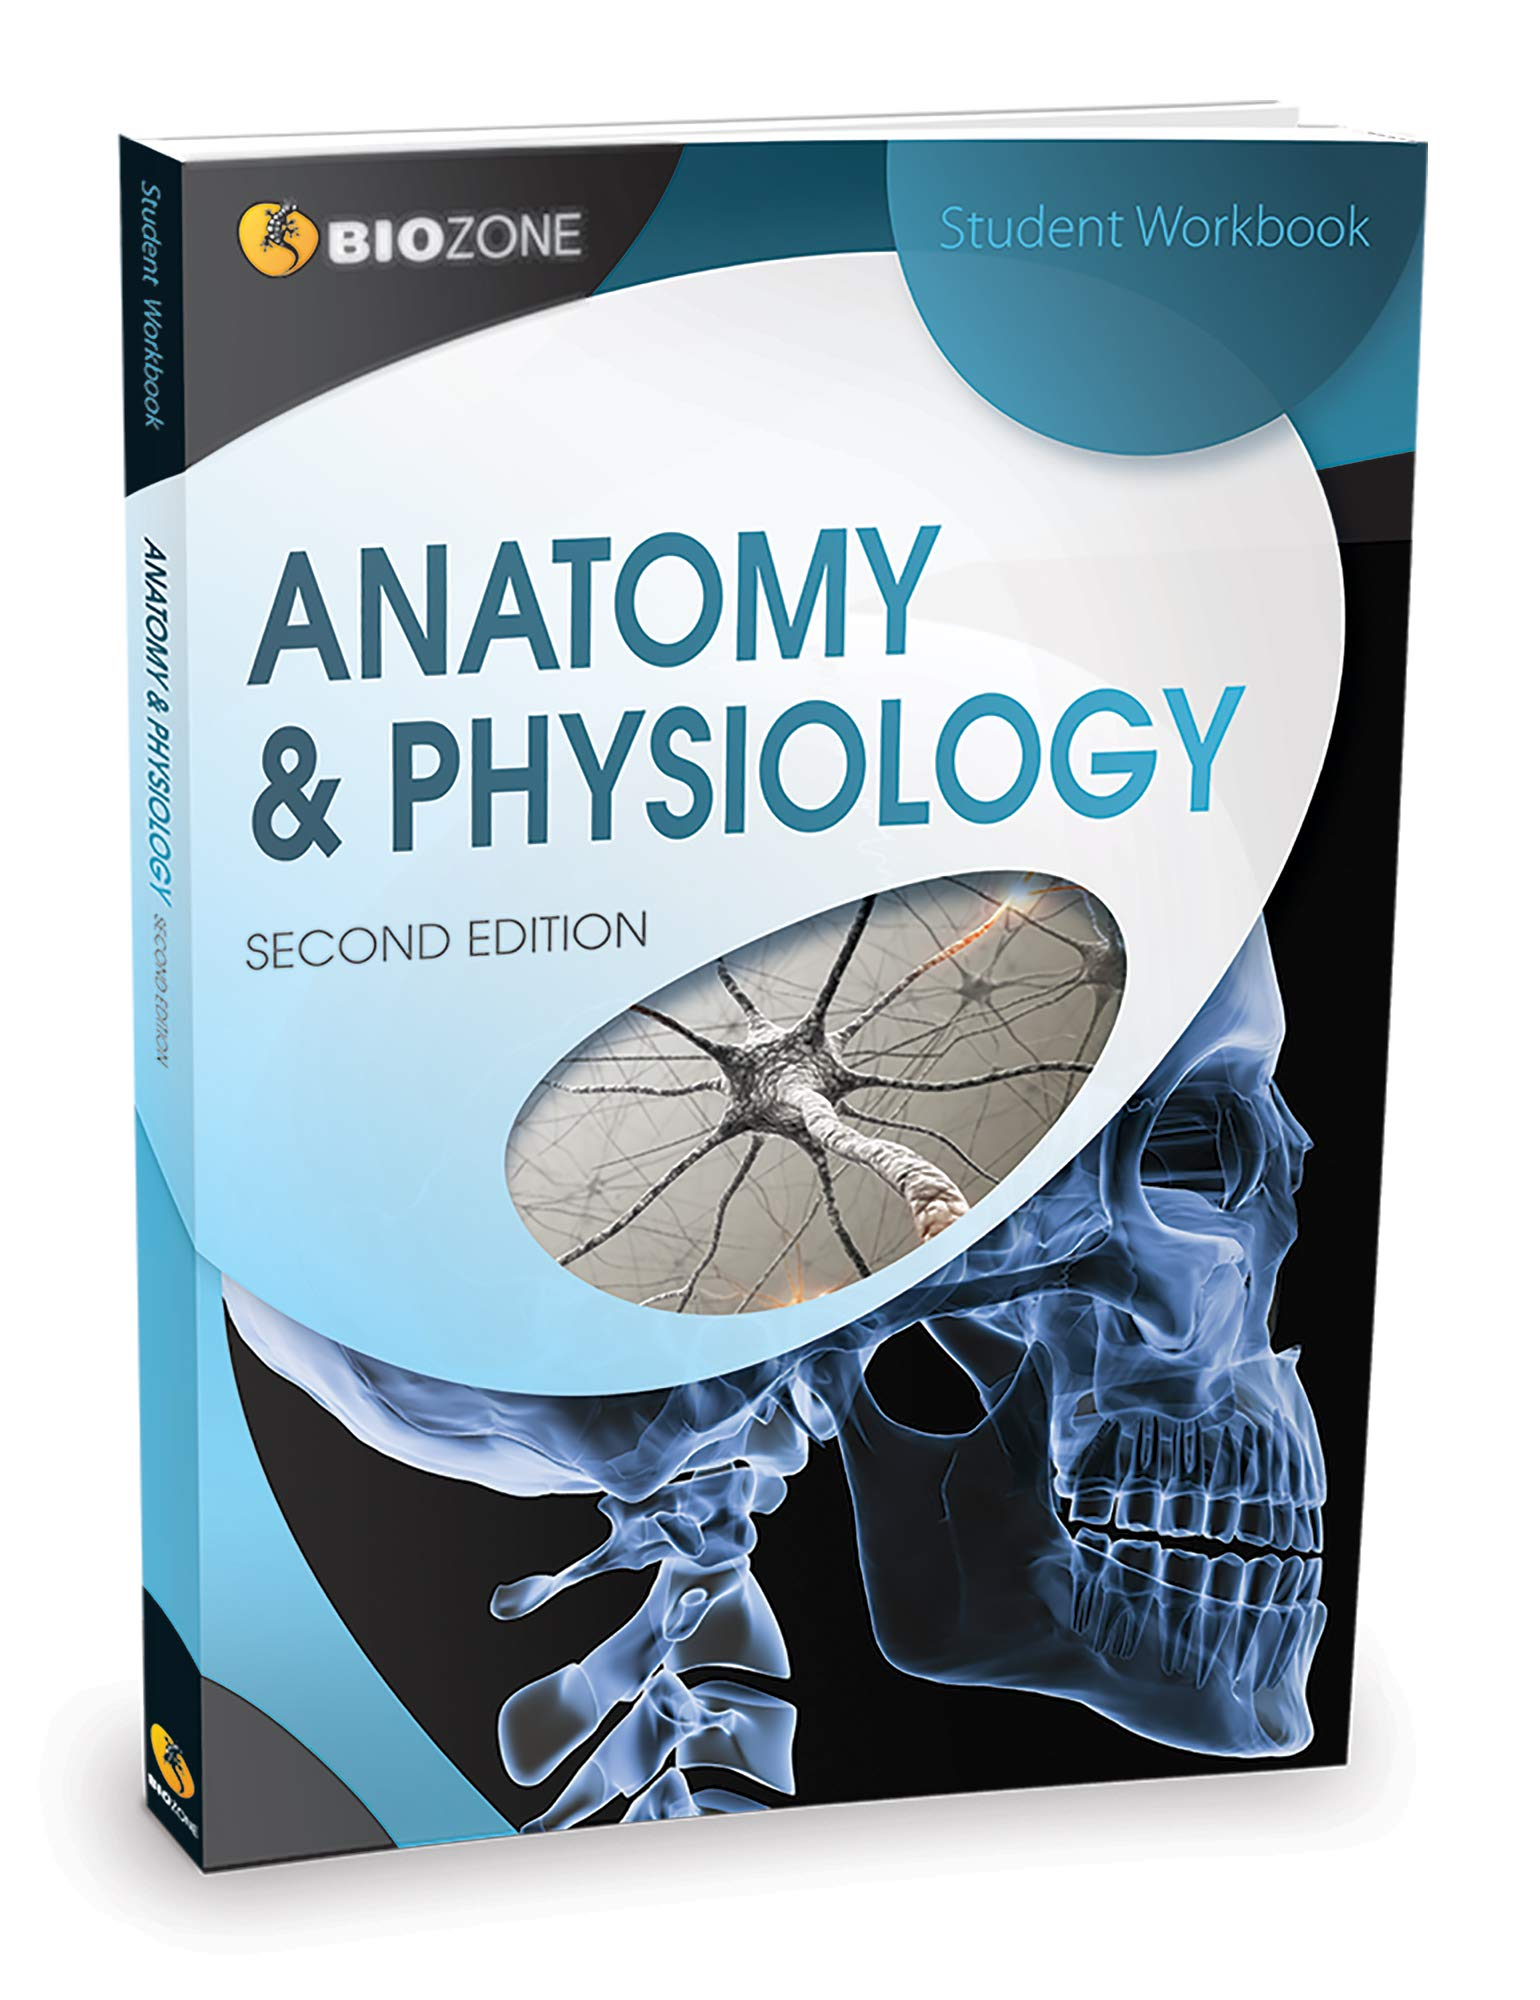 Anatomy & Physiology Student Workbook: Tracey Greenwood, Richard ...